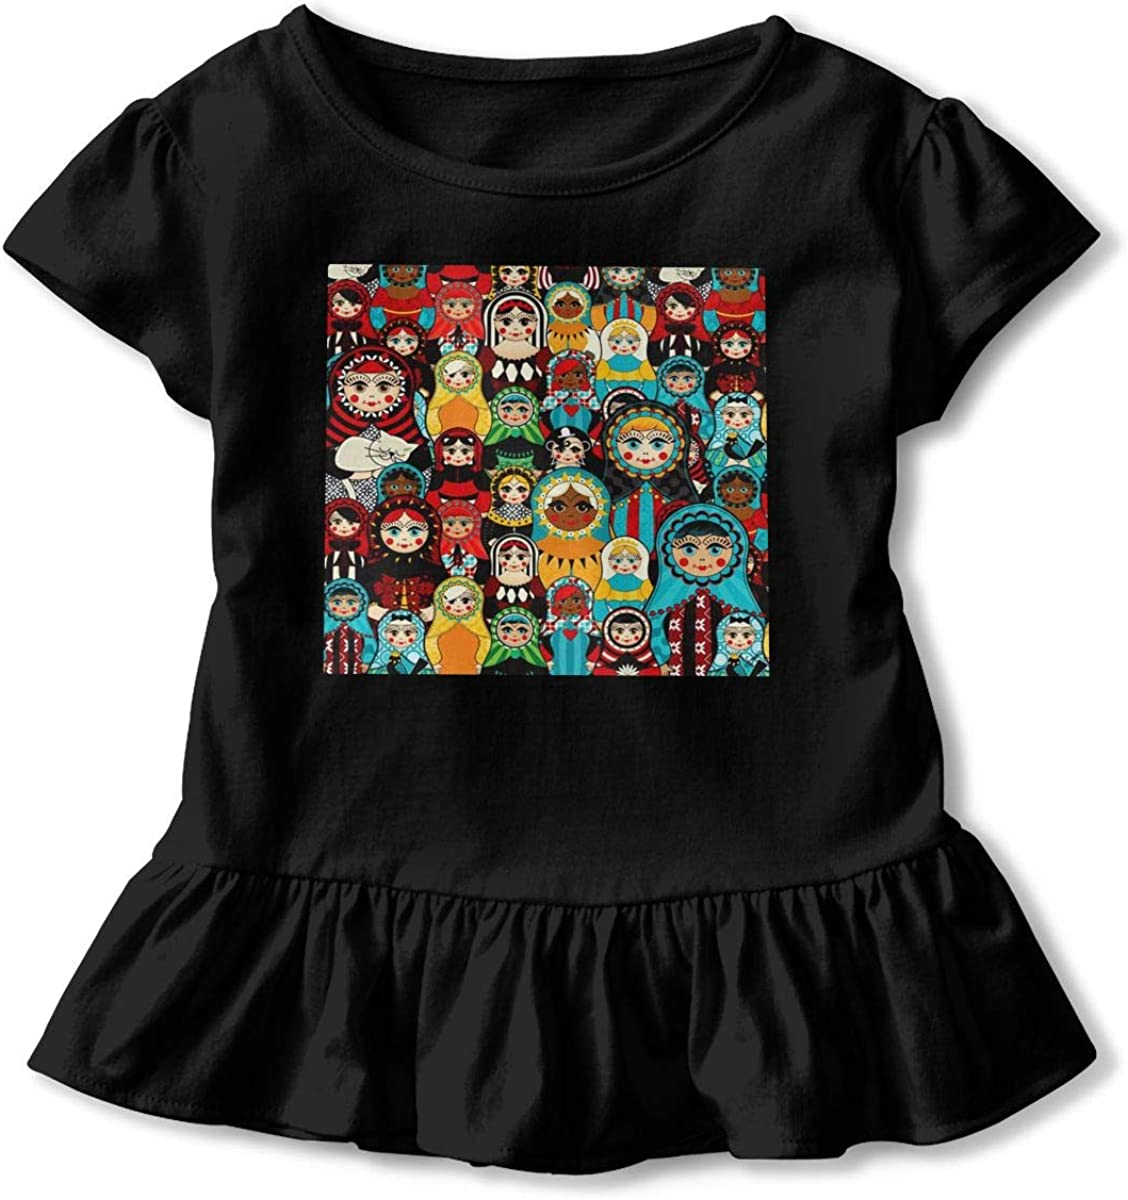 Lponvx Russian Dolls Girl Baby Girl Short Sleeve T-Shirt Flounced Graphic Outfits for 2-6 Years Old Baby